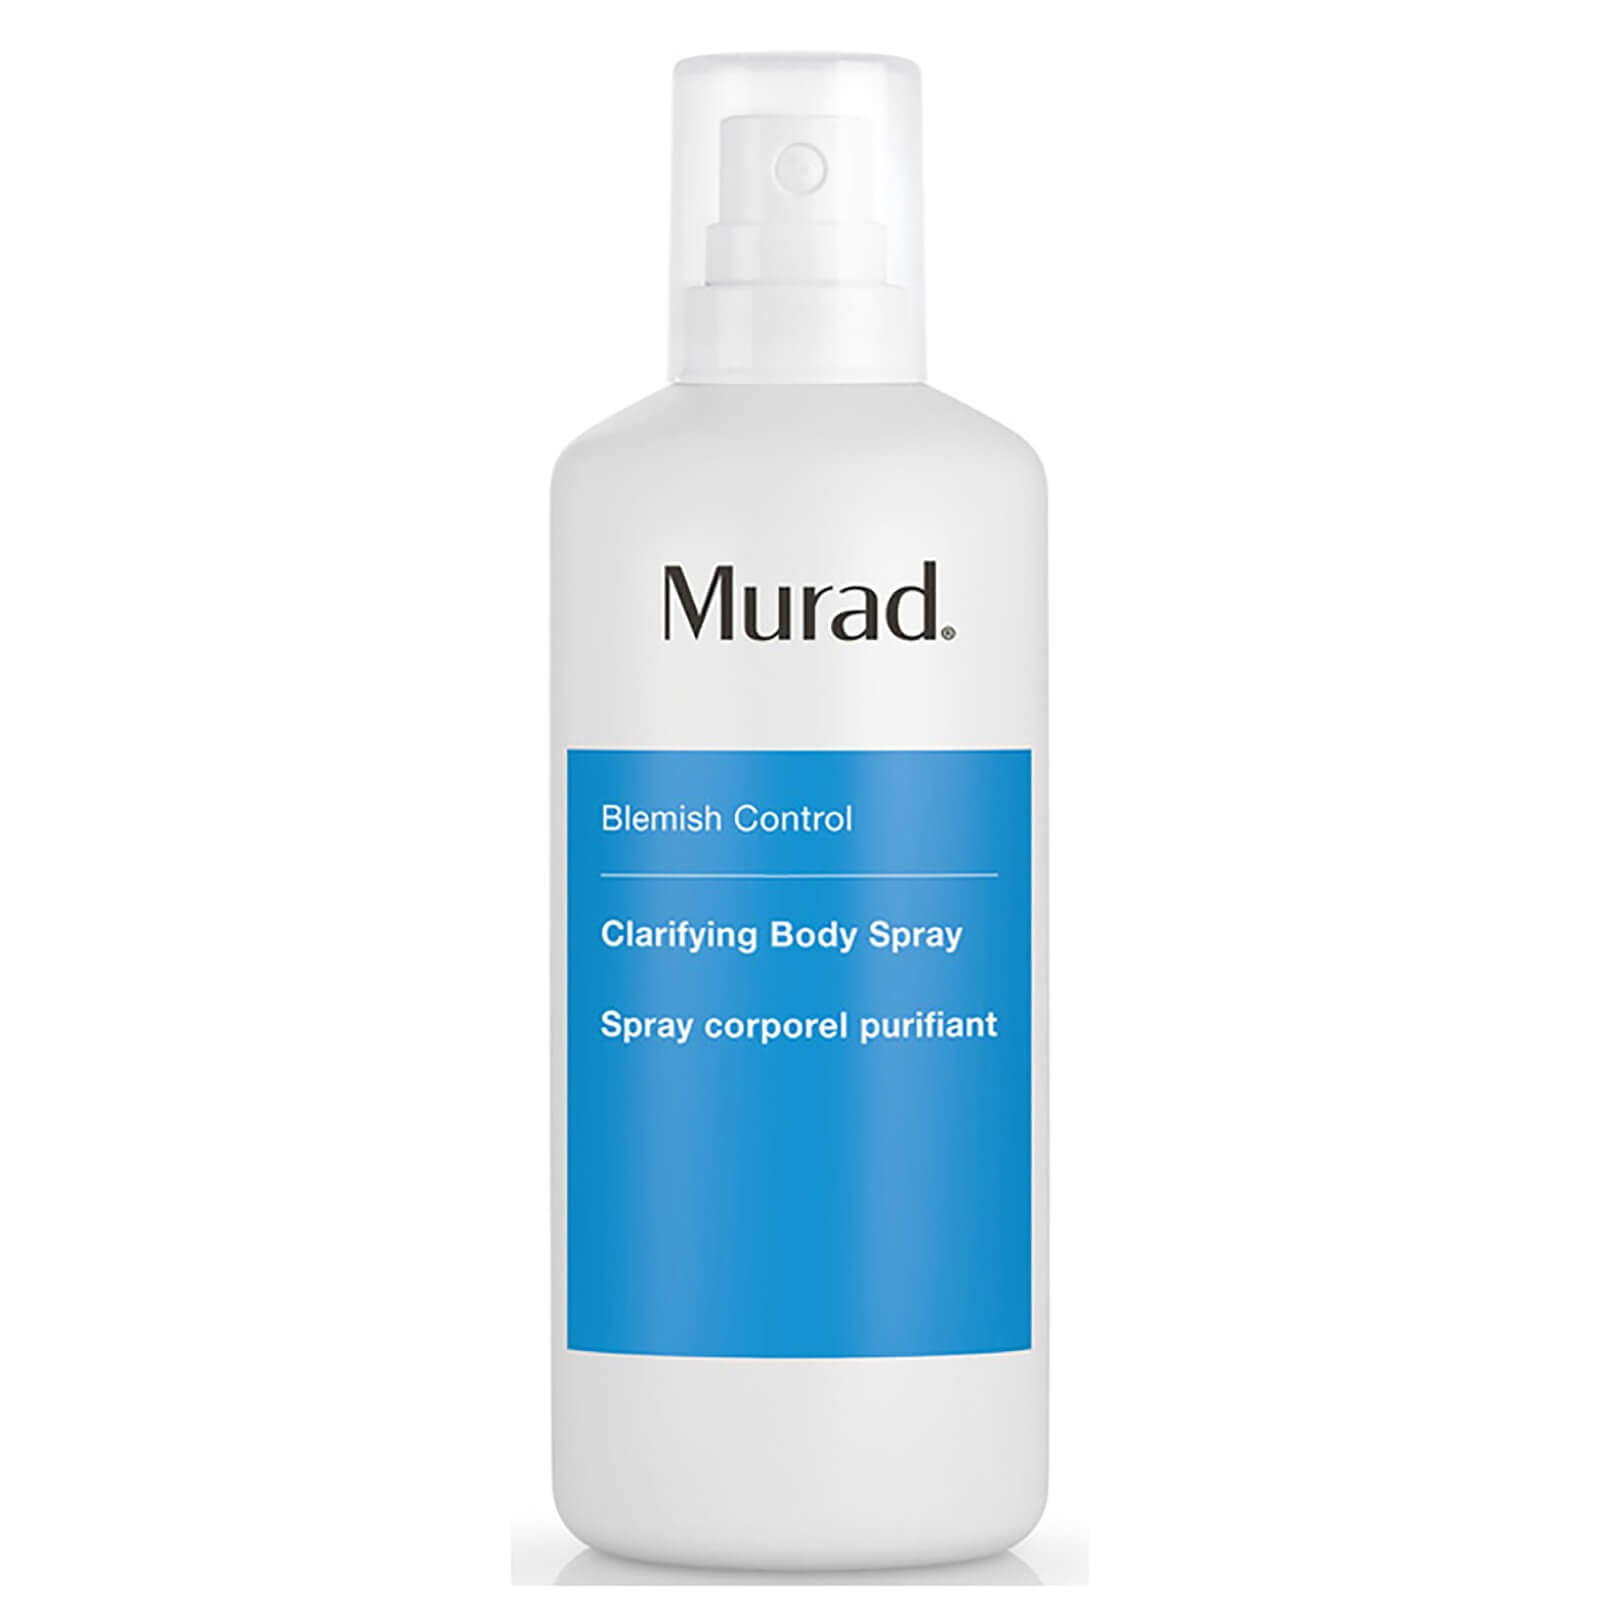 Murad Blemish Clarifying Body Spray